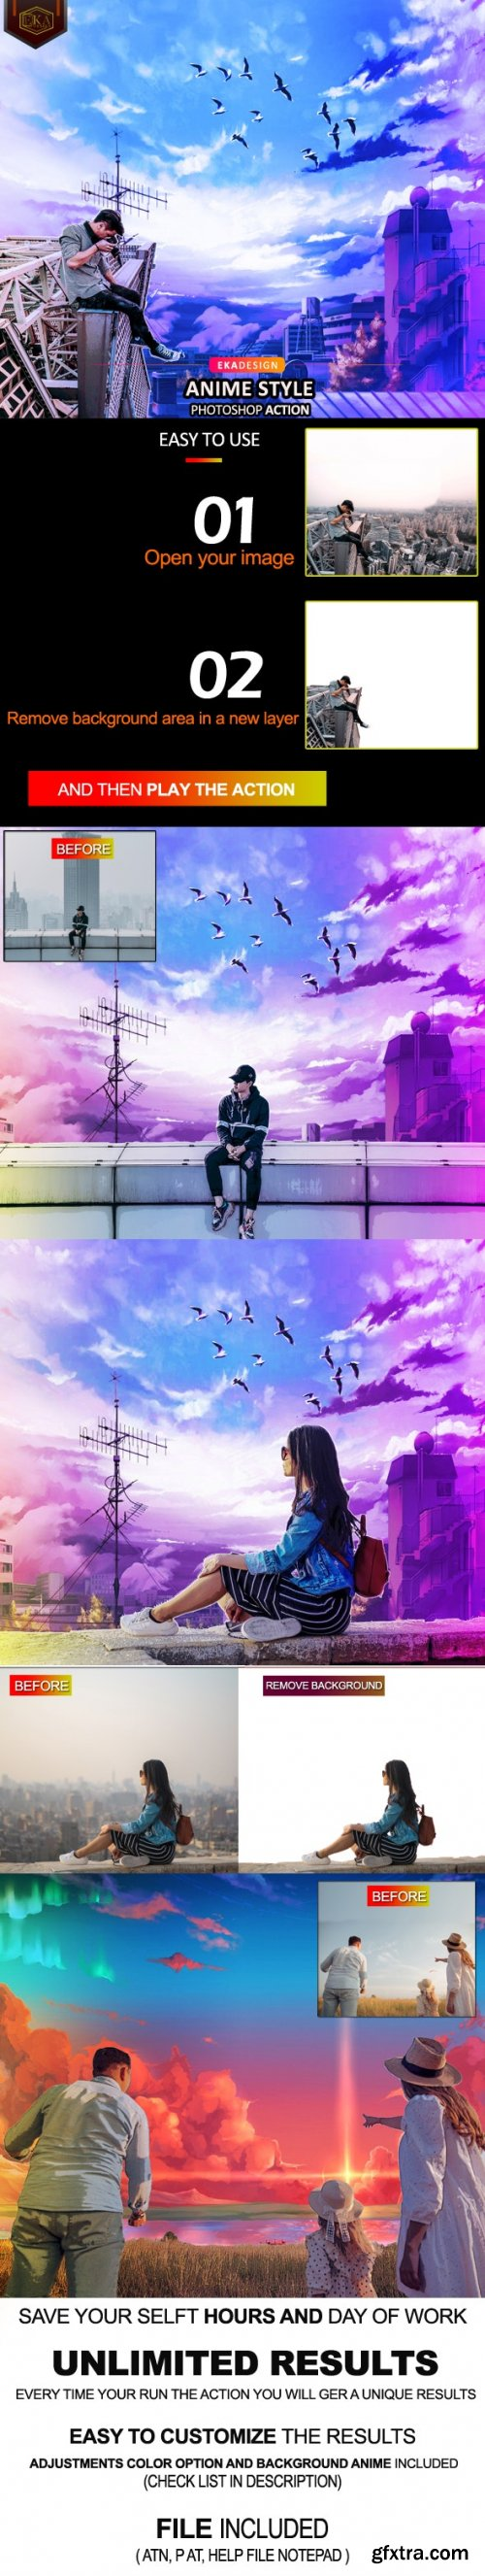 GraphicRiver - Anime Style Photoshop Action 33584300